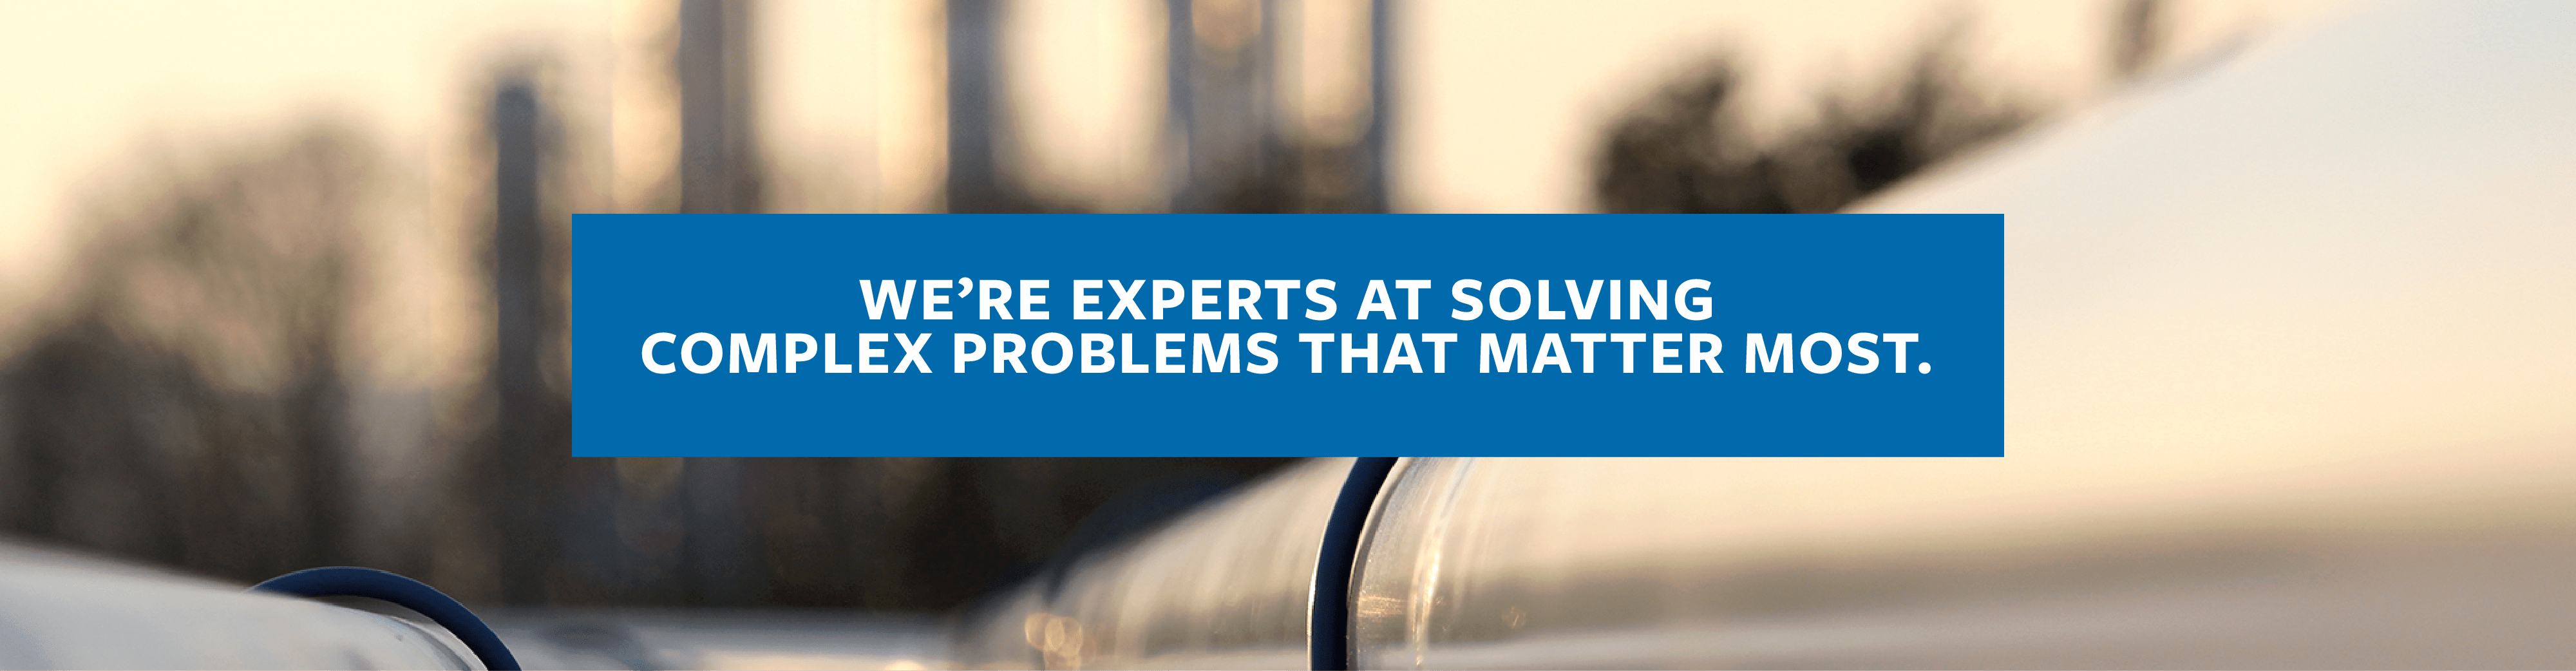 We're experts at solving complex problems that matter most.